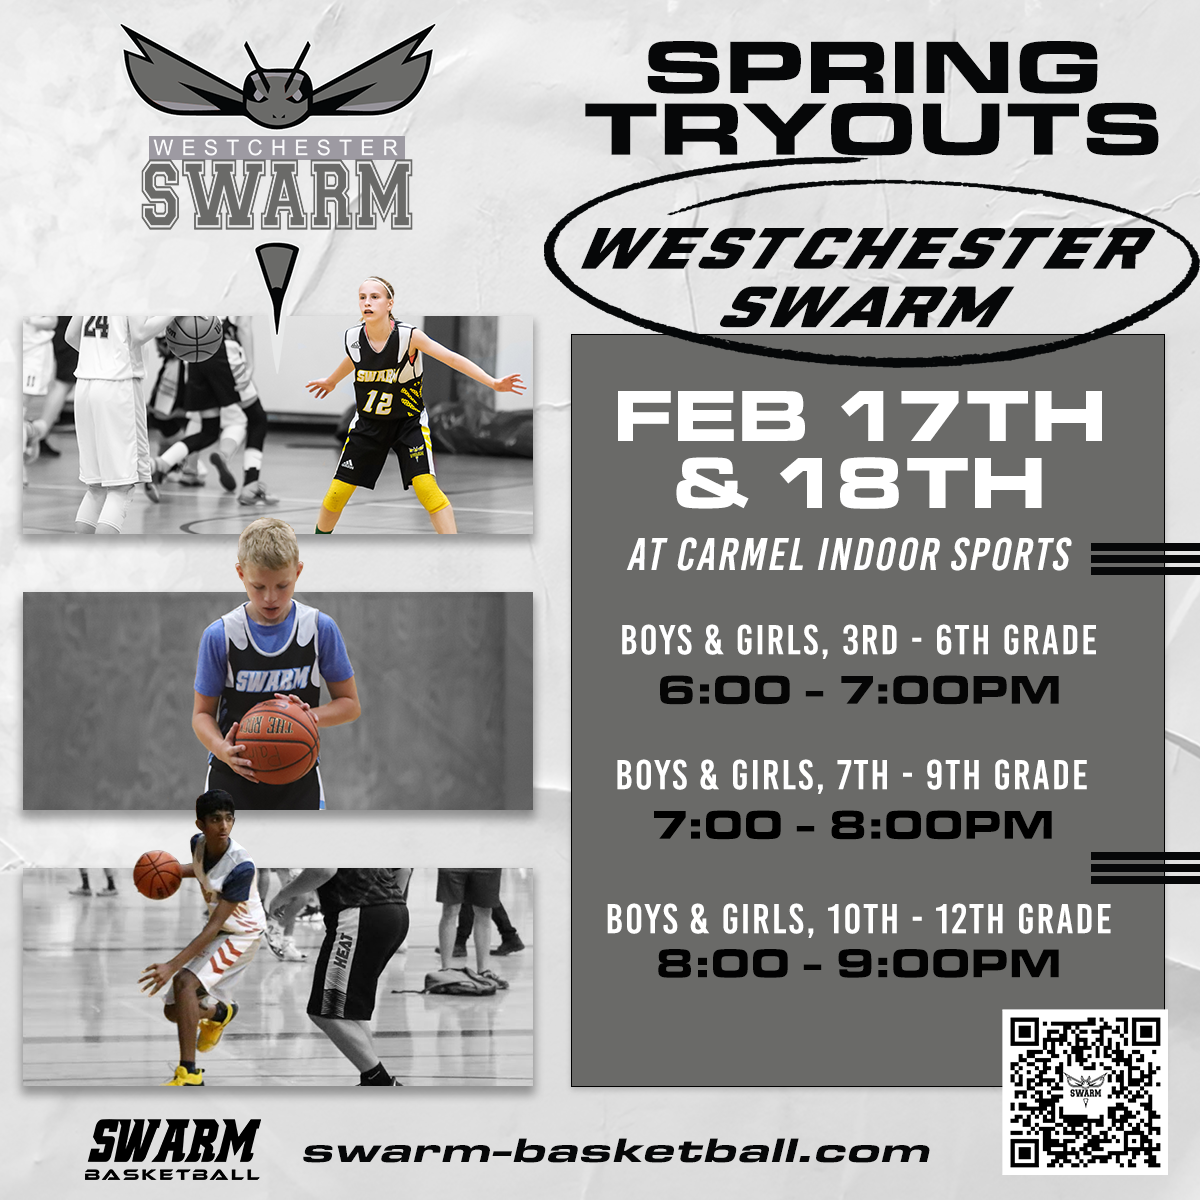 Spring21Tryouts_WestchesterCar